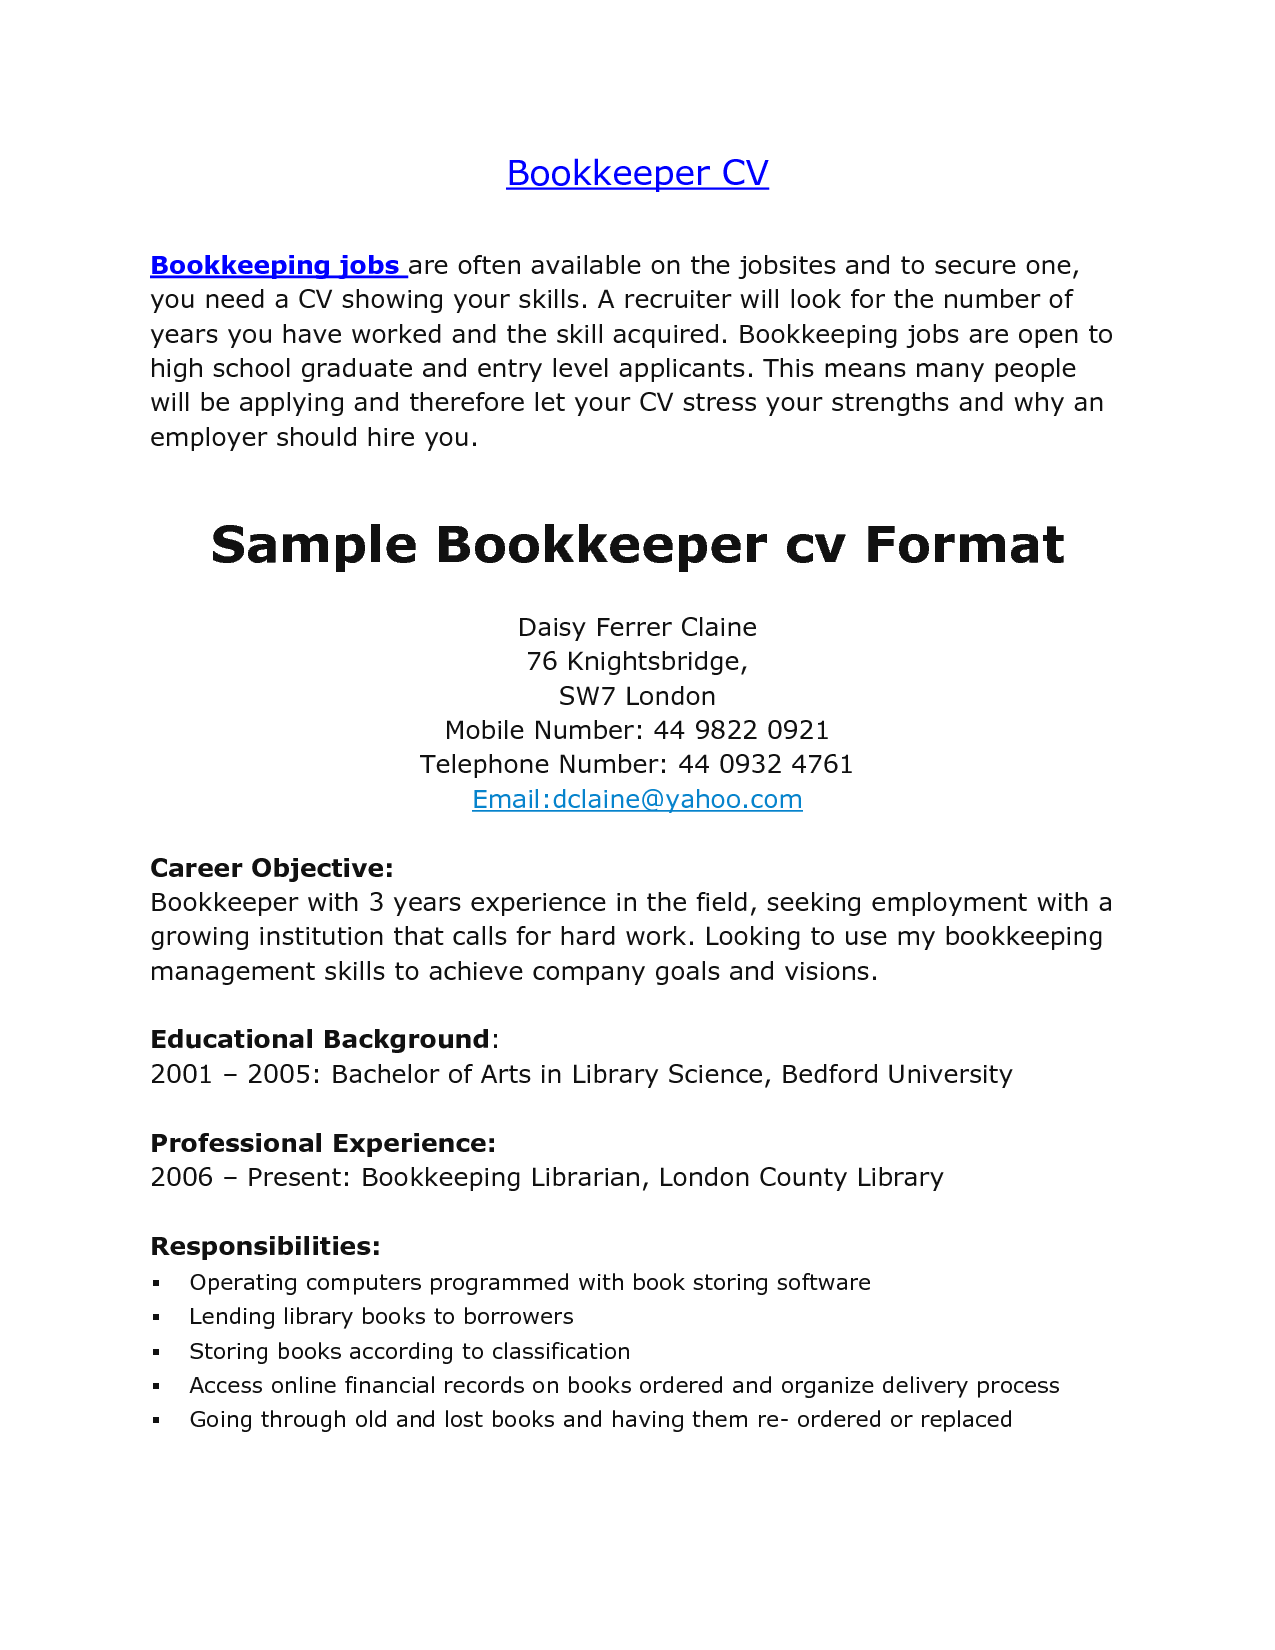 sample resume store clerk resume sle floral designer resume examples - Grocery Store Produce Resume Sample